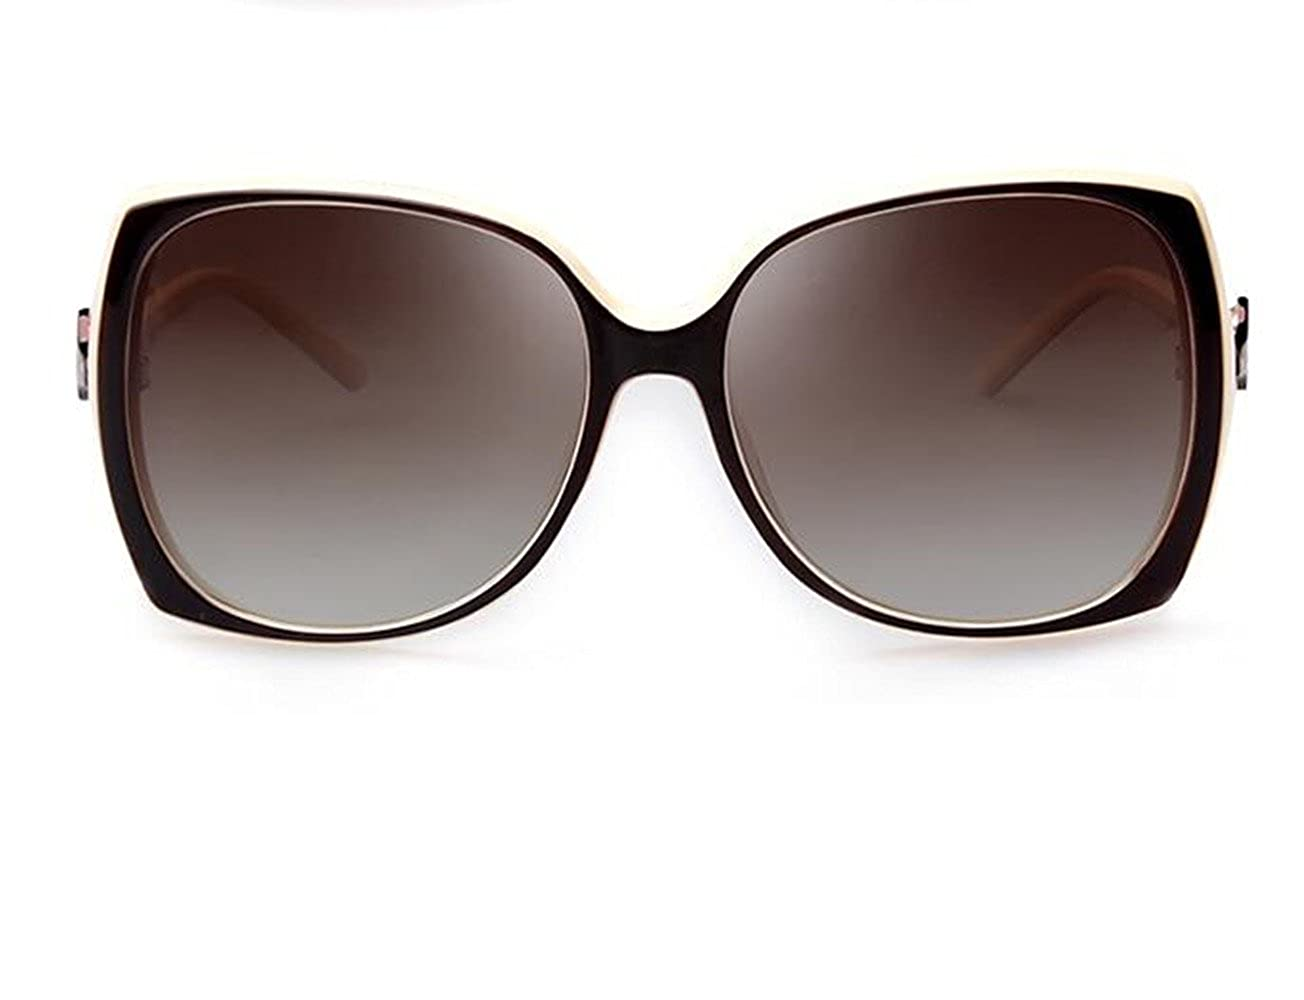 Espresso Brown SUNGLASSES Ms. Sunglasses Polarized Sunglasses Driver Mirror